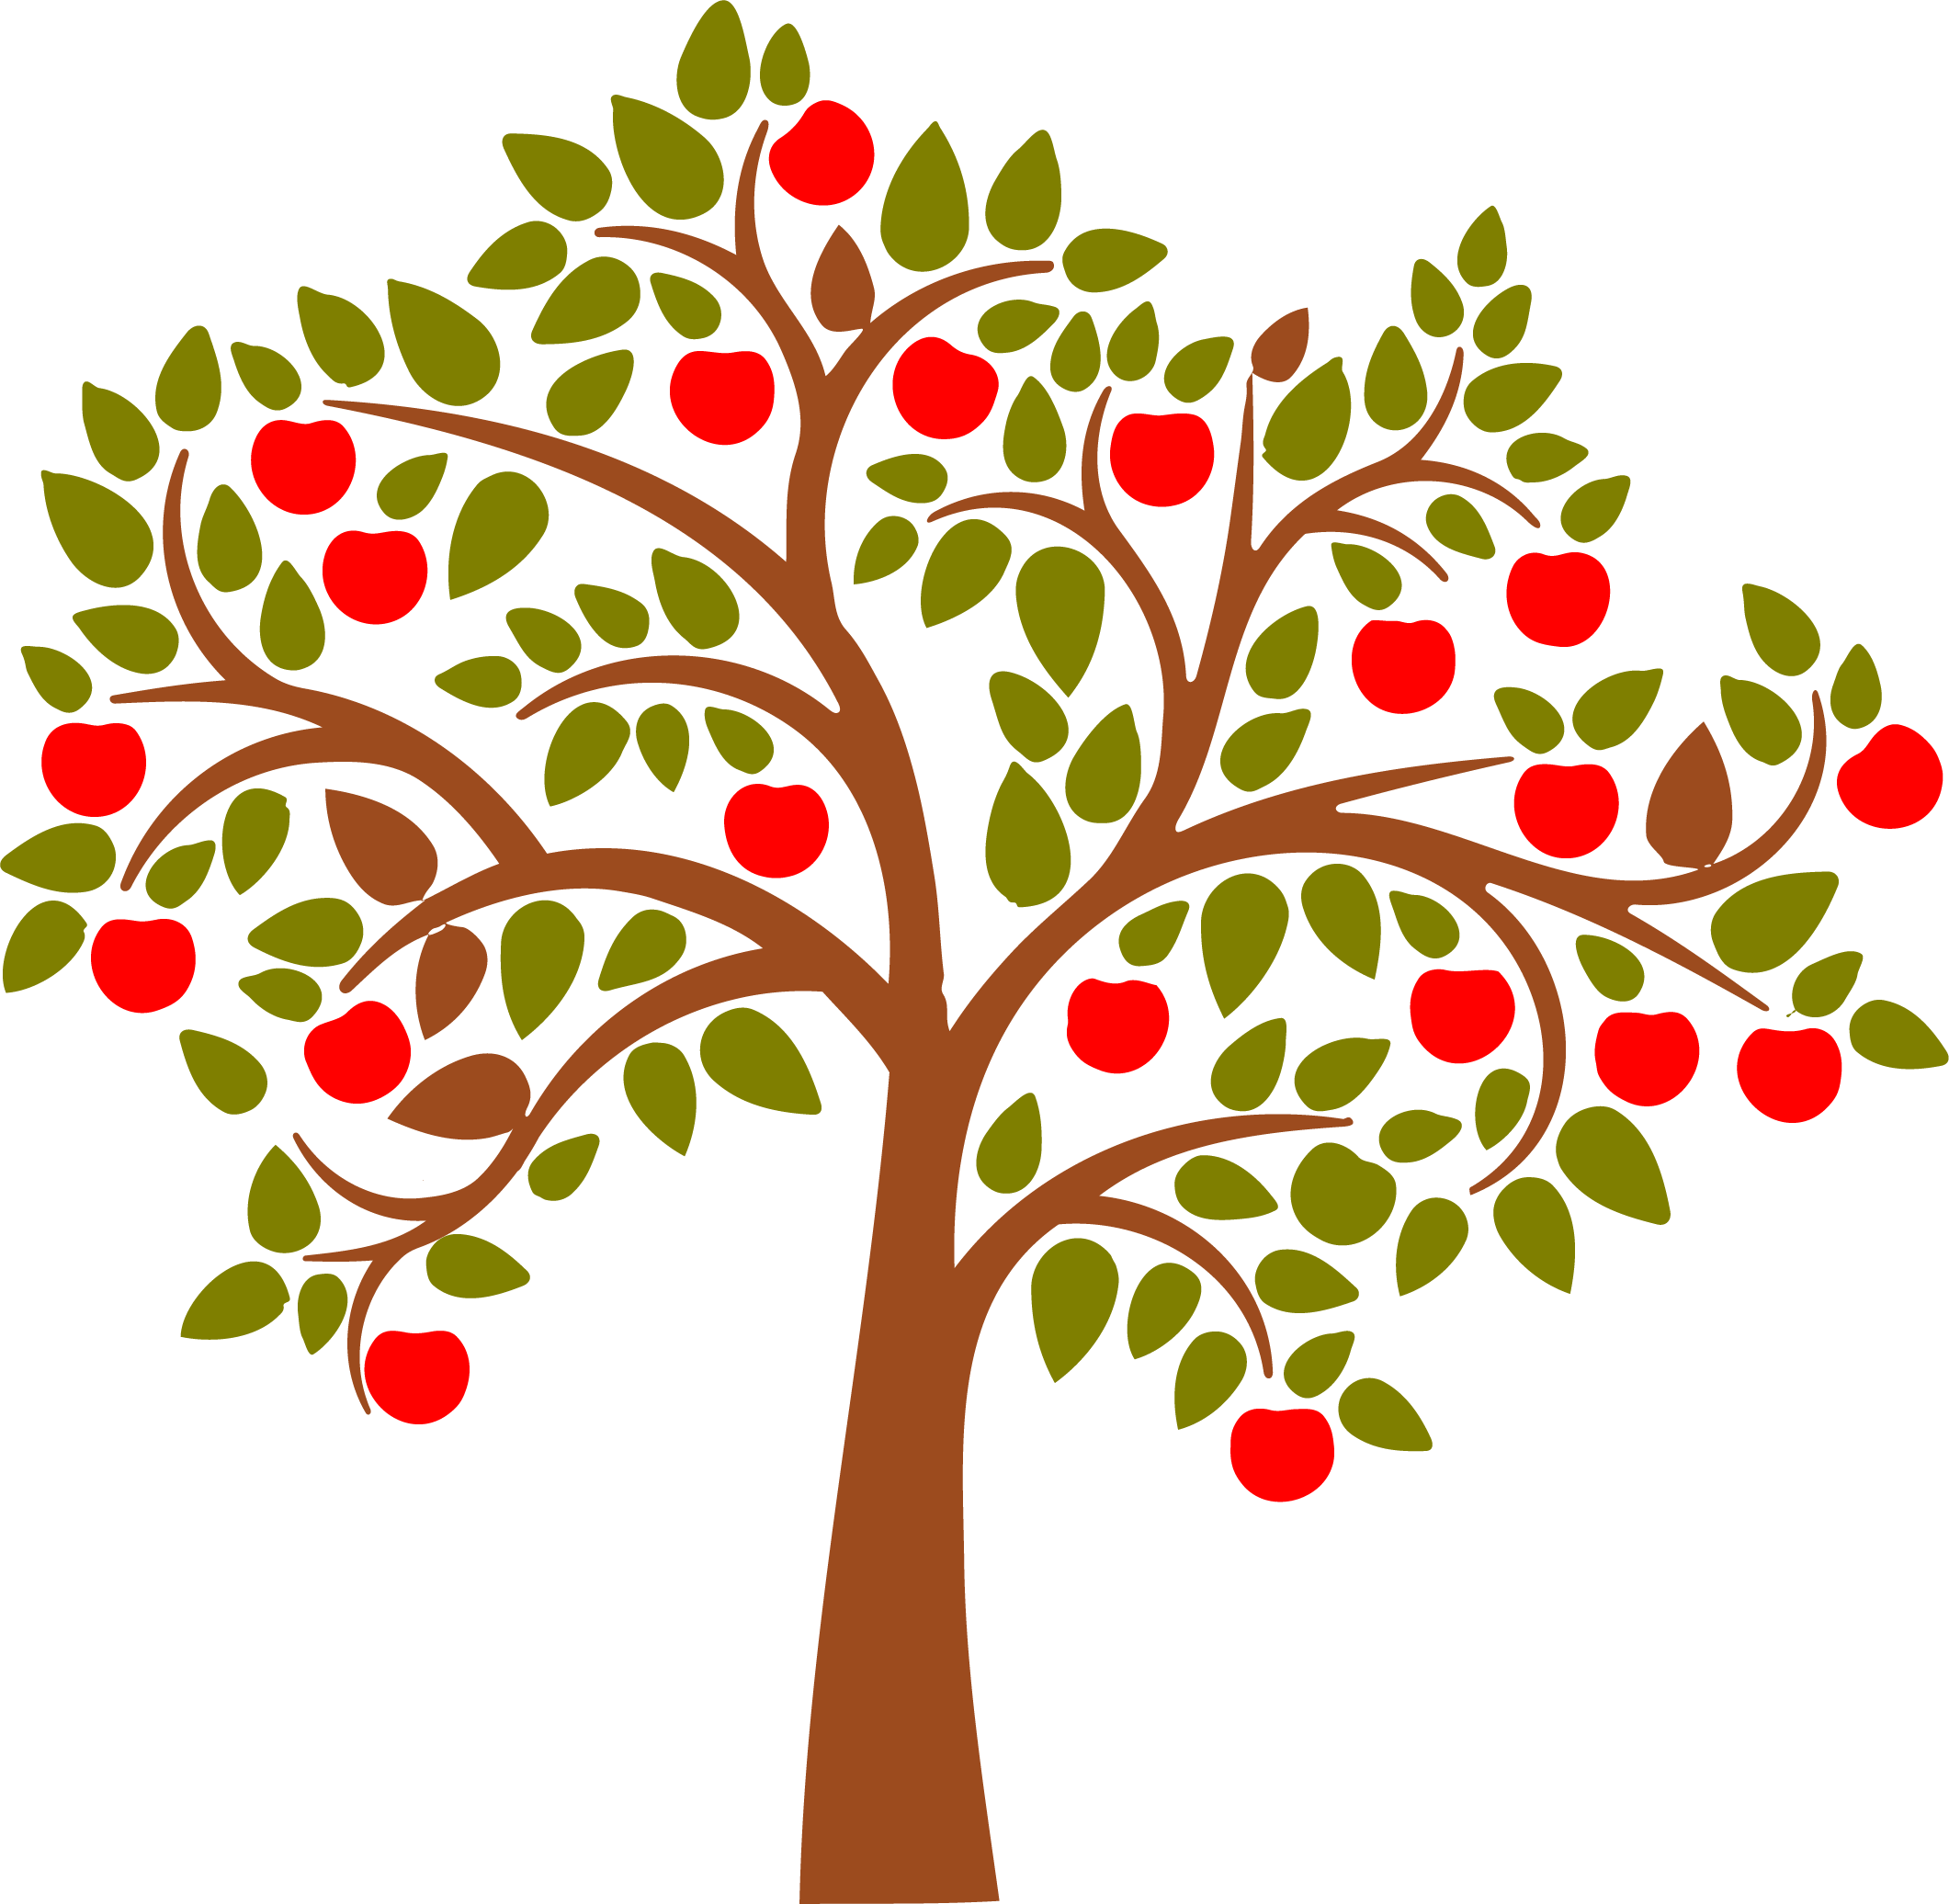 Transparent background tree clipart banner freeuse library Apple Tree Drawing at GetDrawings.com | Free for personal use Apple ... banner freeuse library